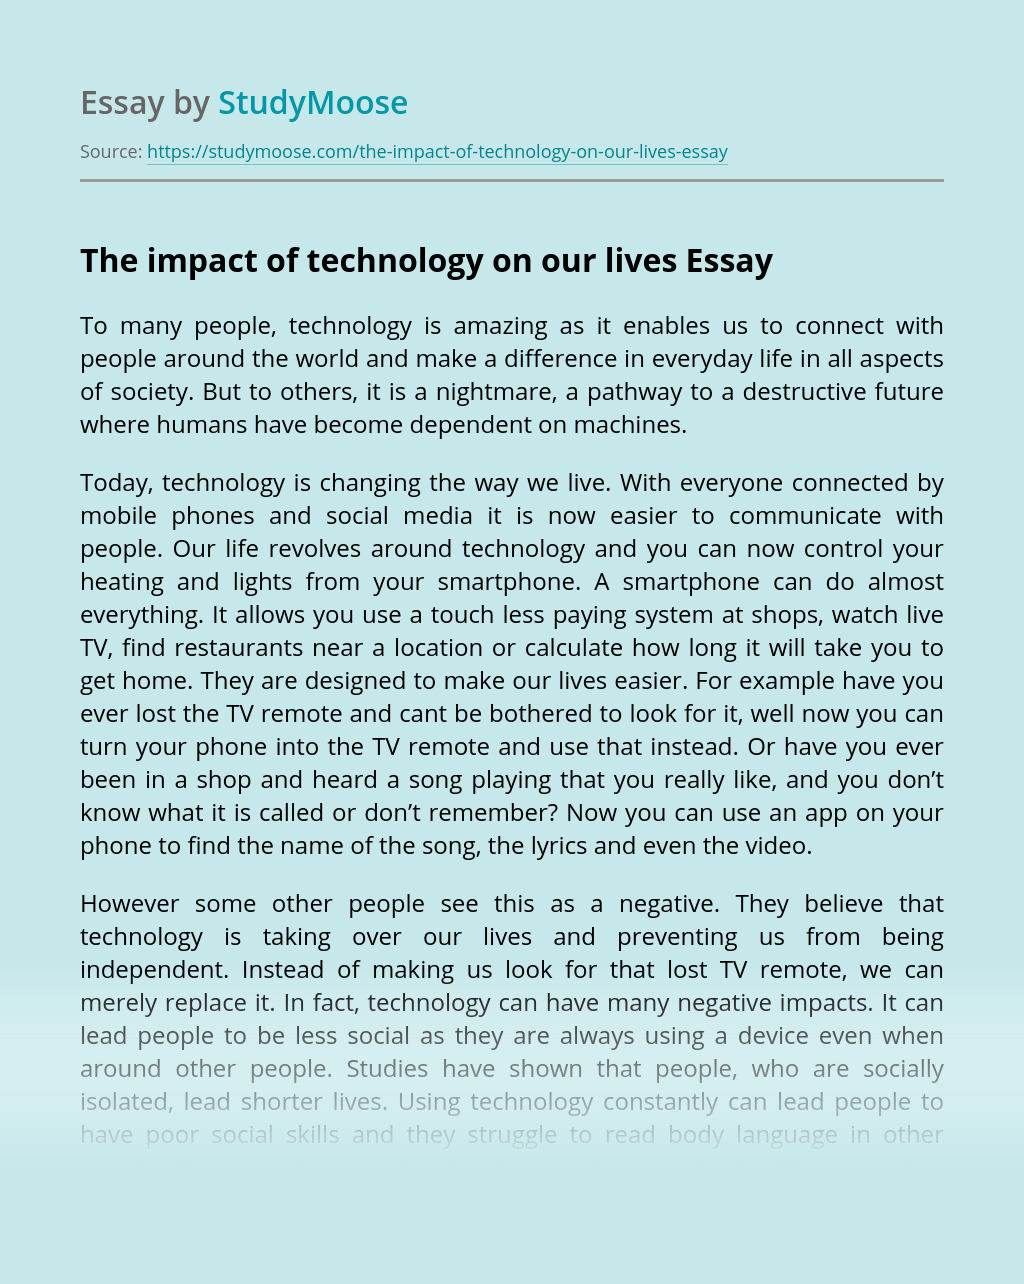 The impact of technology on our lives